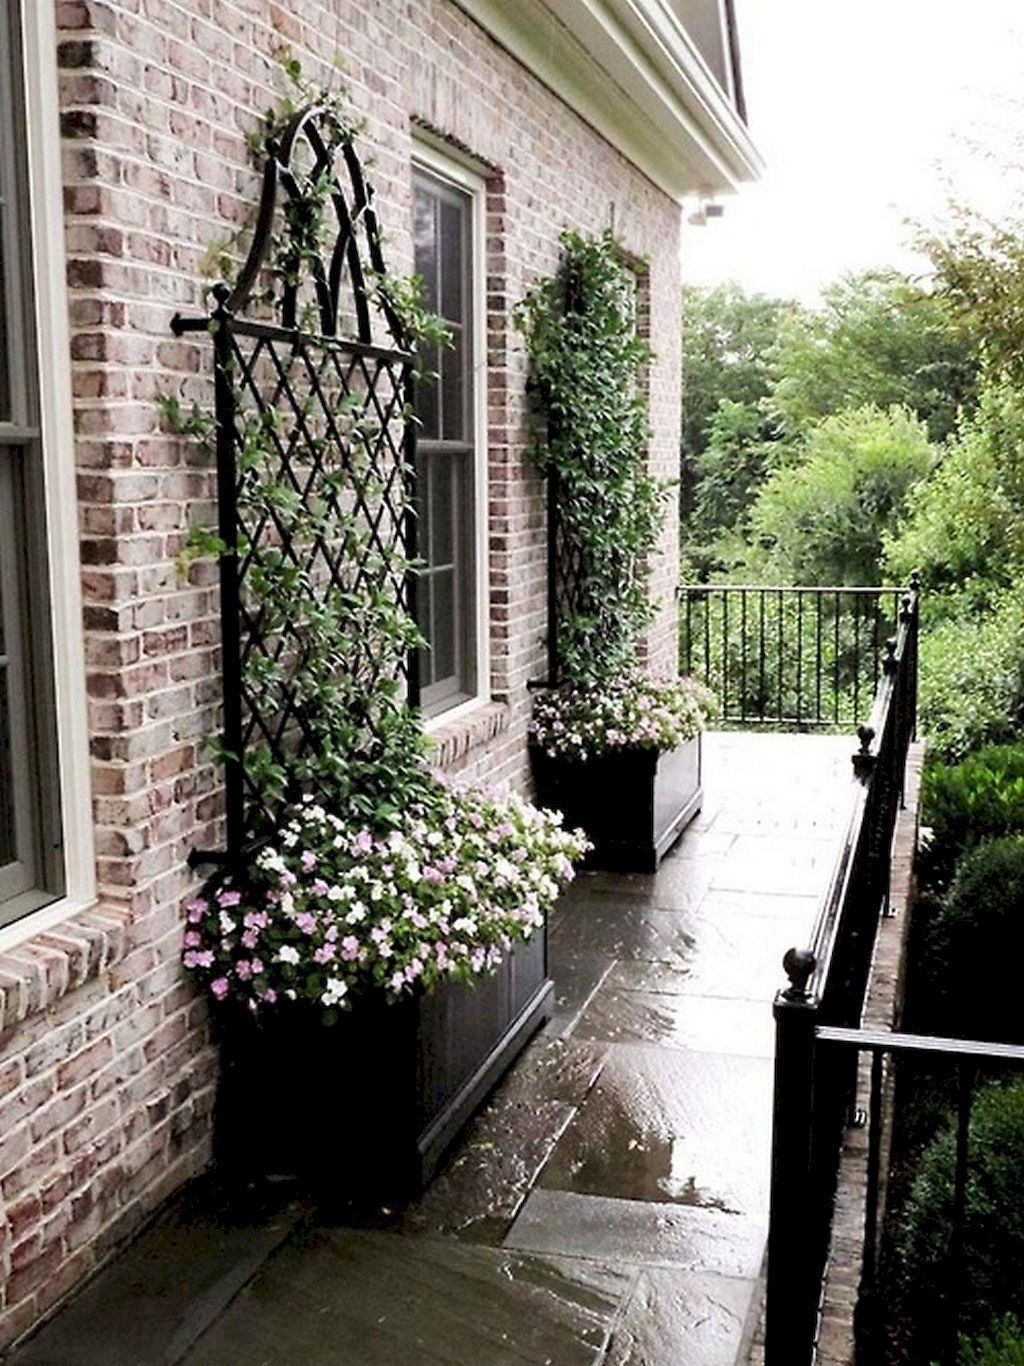 Landscaping ideas for front yard with porch   Modern Low Maintenance Front Yard Landscaping Ideas  Dream